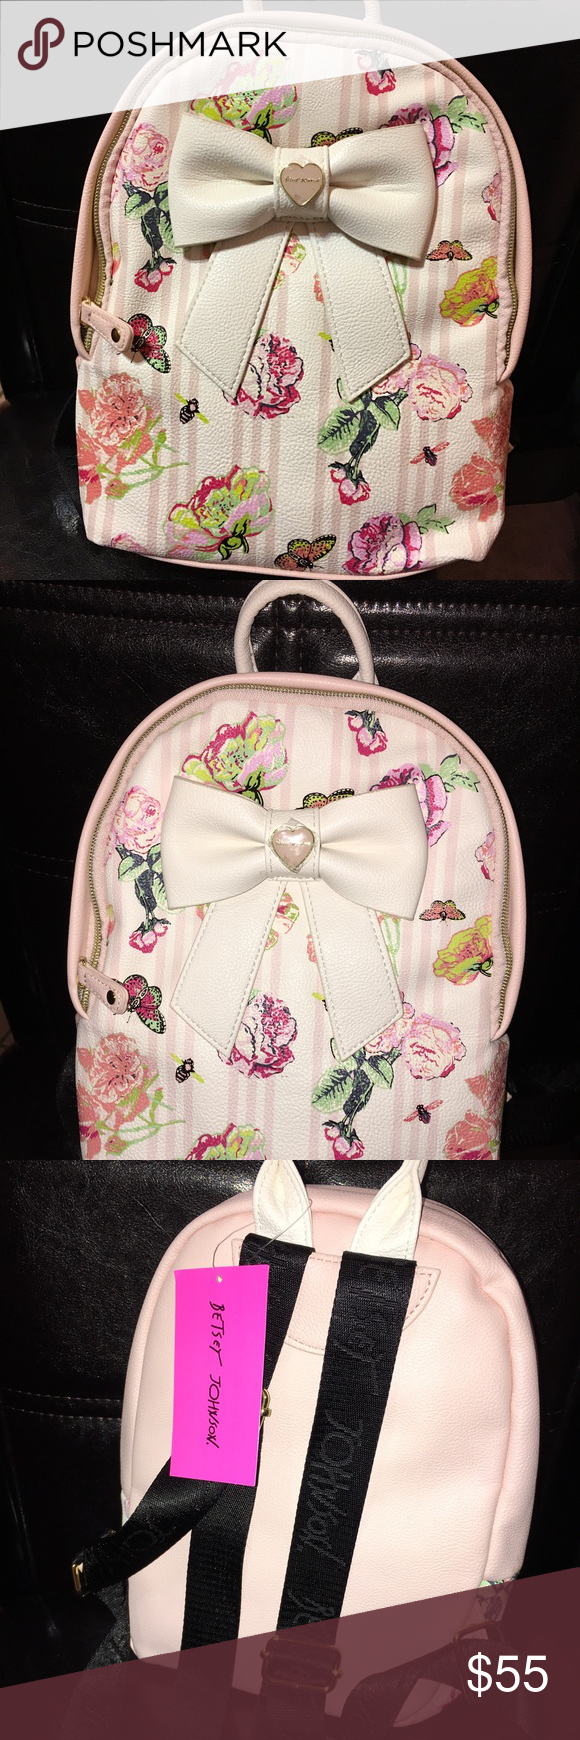 NWT Betsy Johnson small backpack Lovely small Betsy Johnson backpack. Is just adorable adjustable straps with Betsy on them. Perfect for a toddler  Betsey Johnson Bags Backpacks